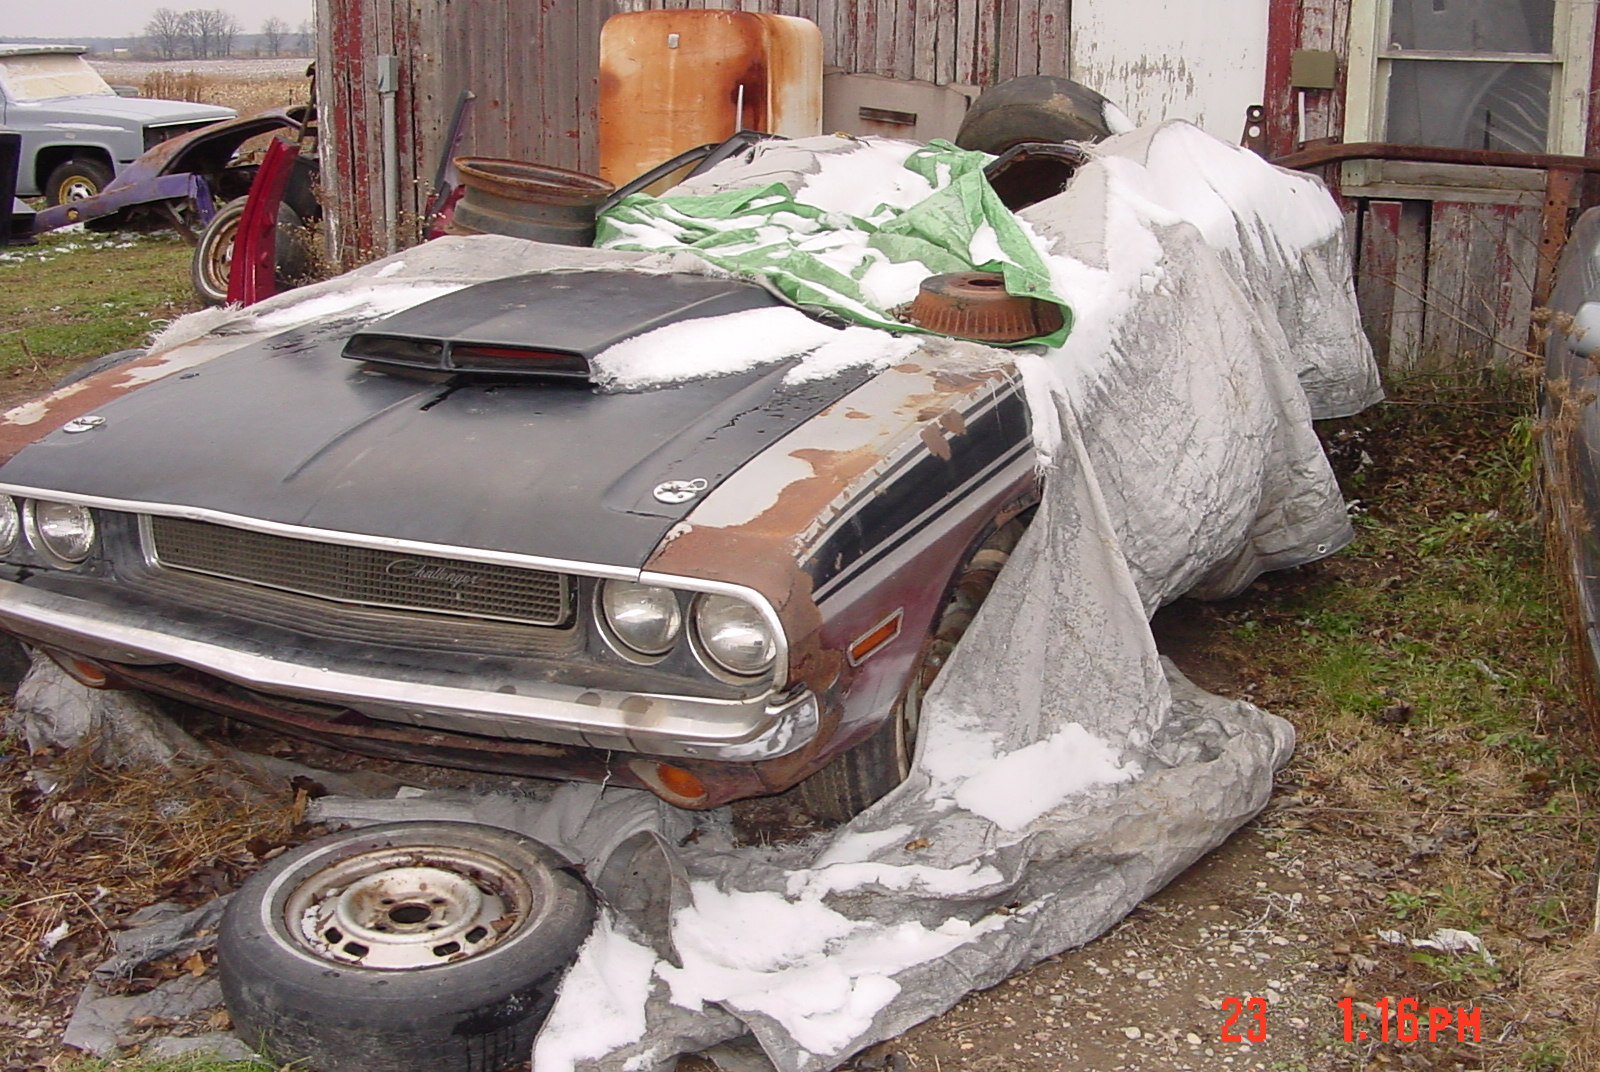 SNOPES.COM: PORTUGUESE BARN FIND